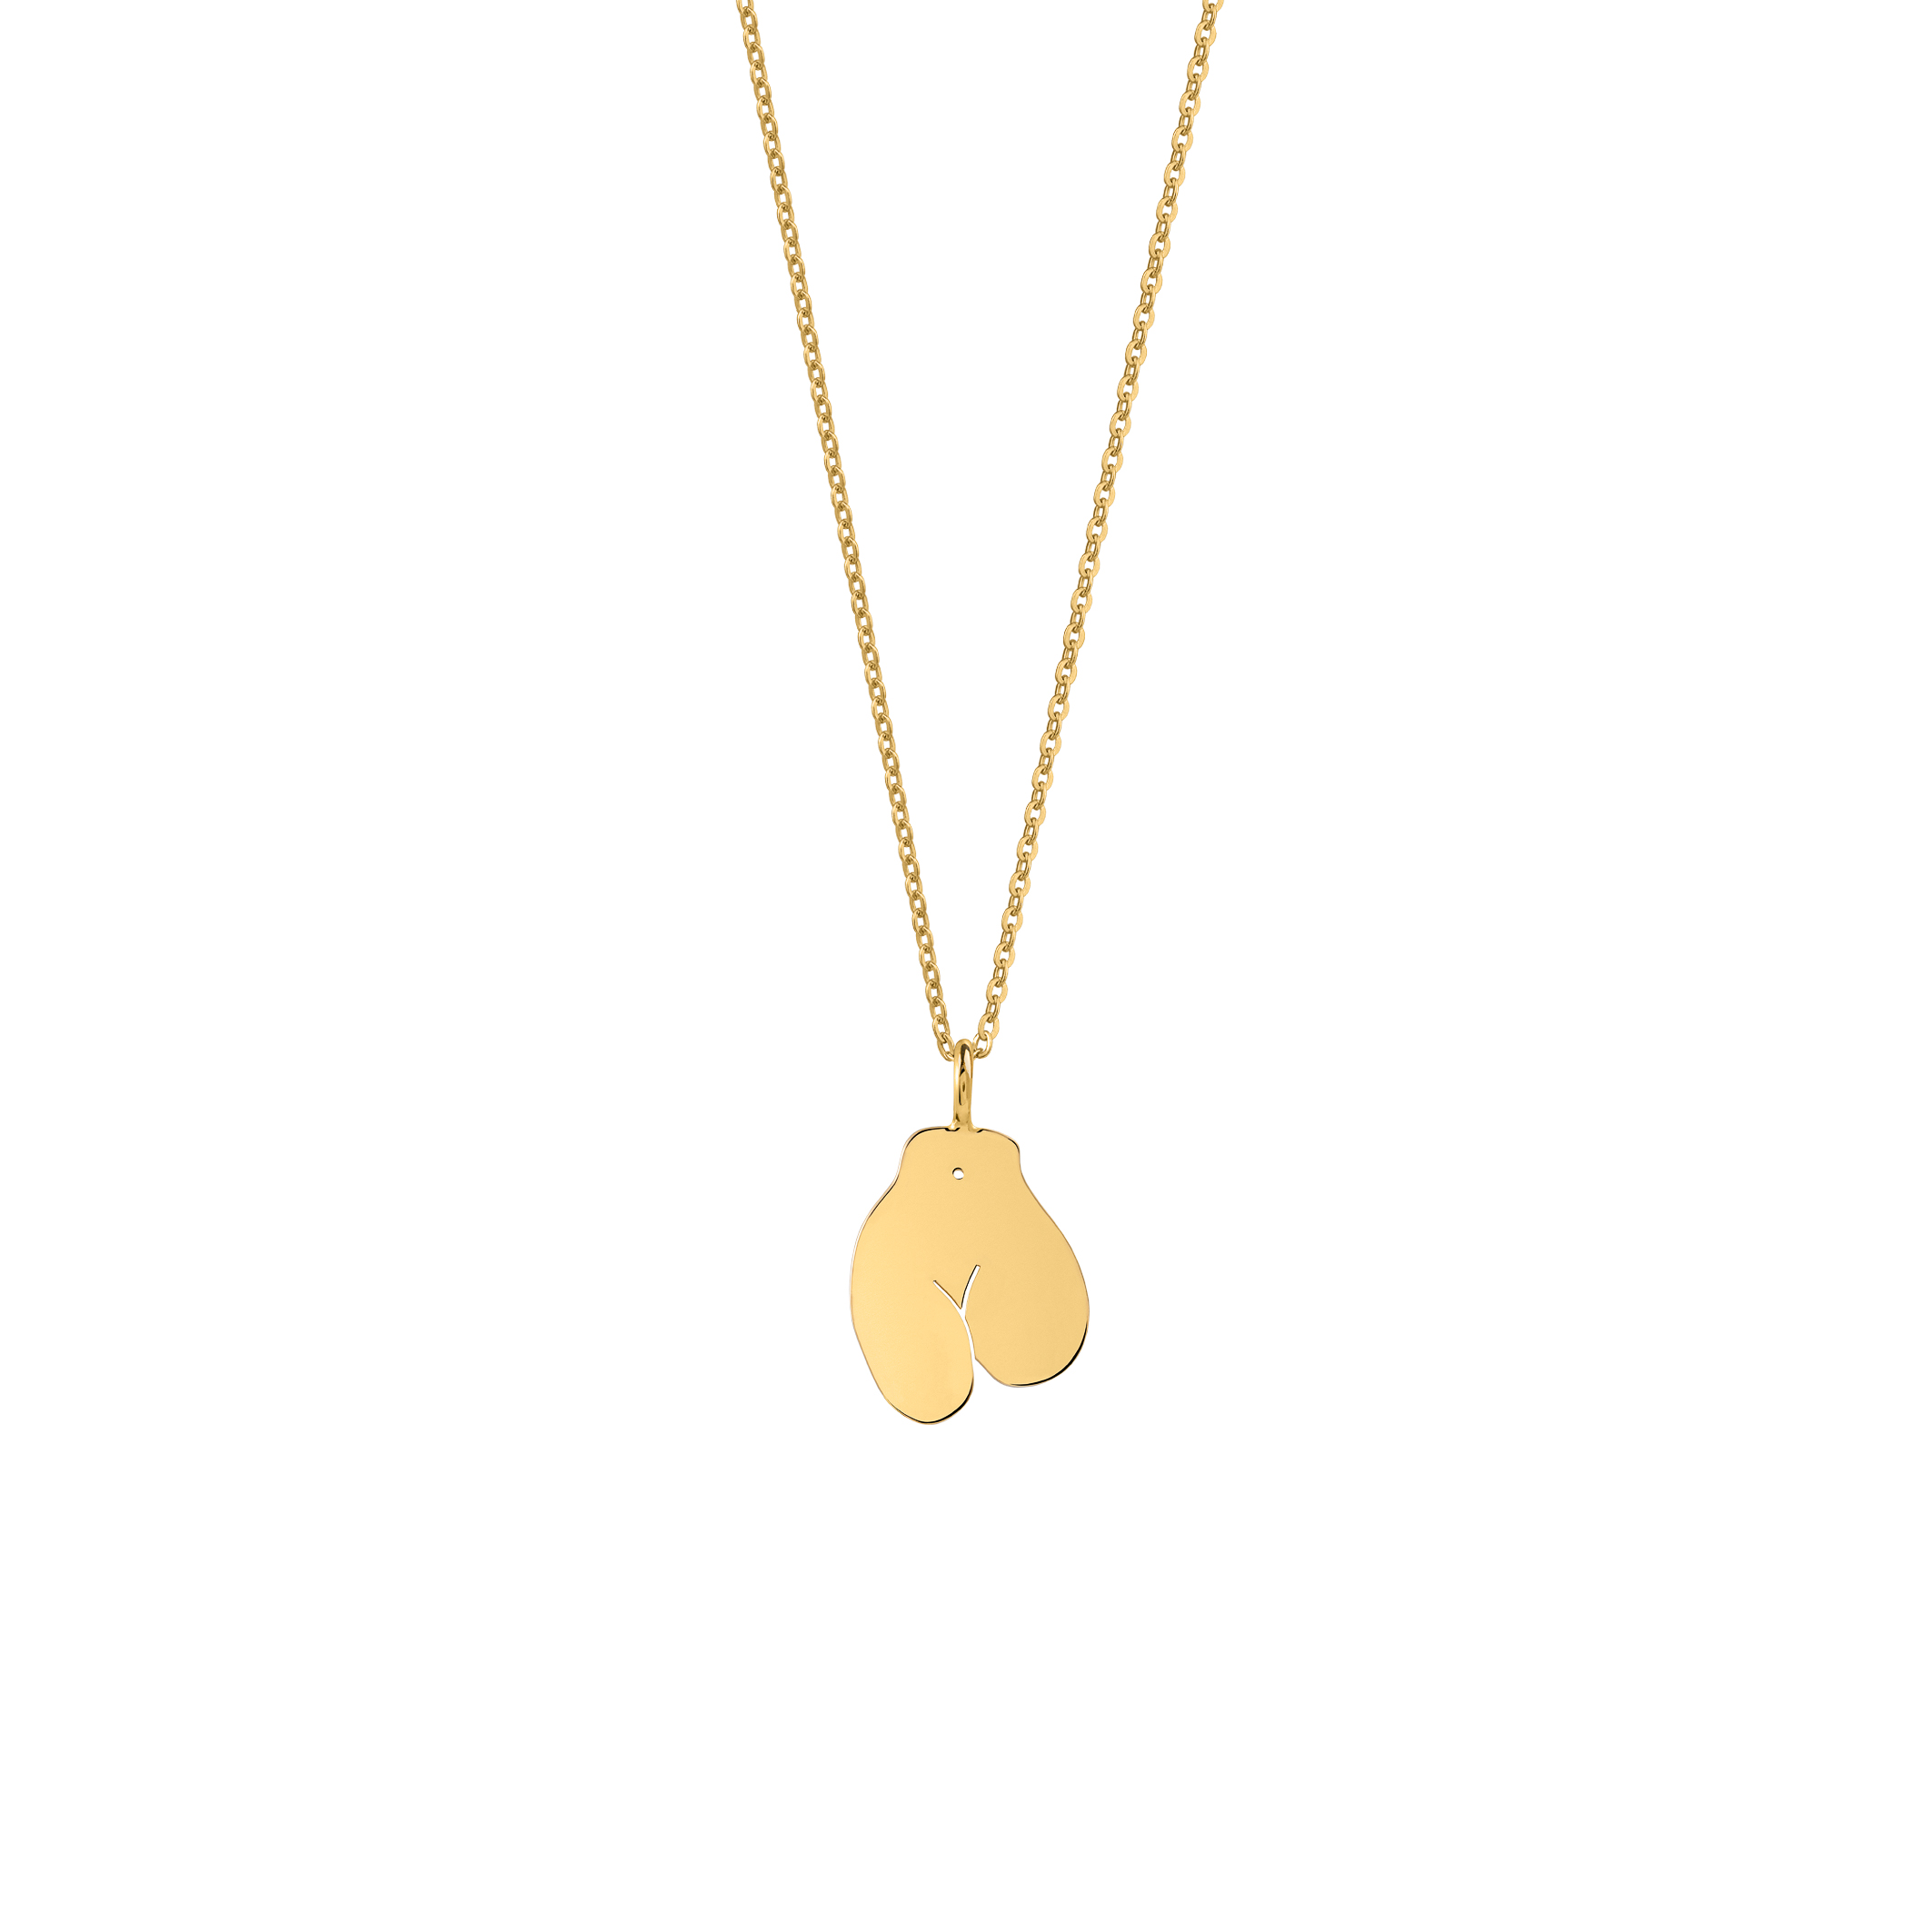 Limited Edition / Féminin 2 Necklace Gold